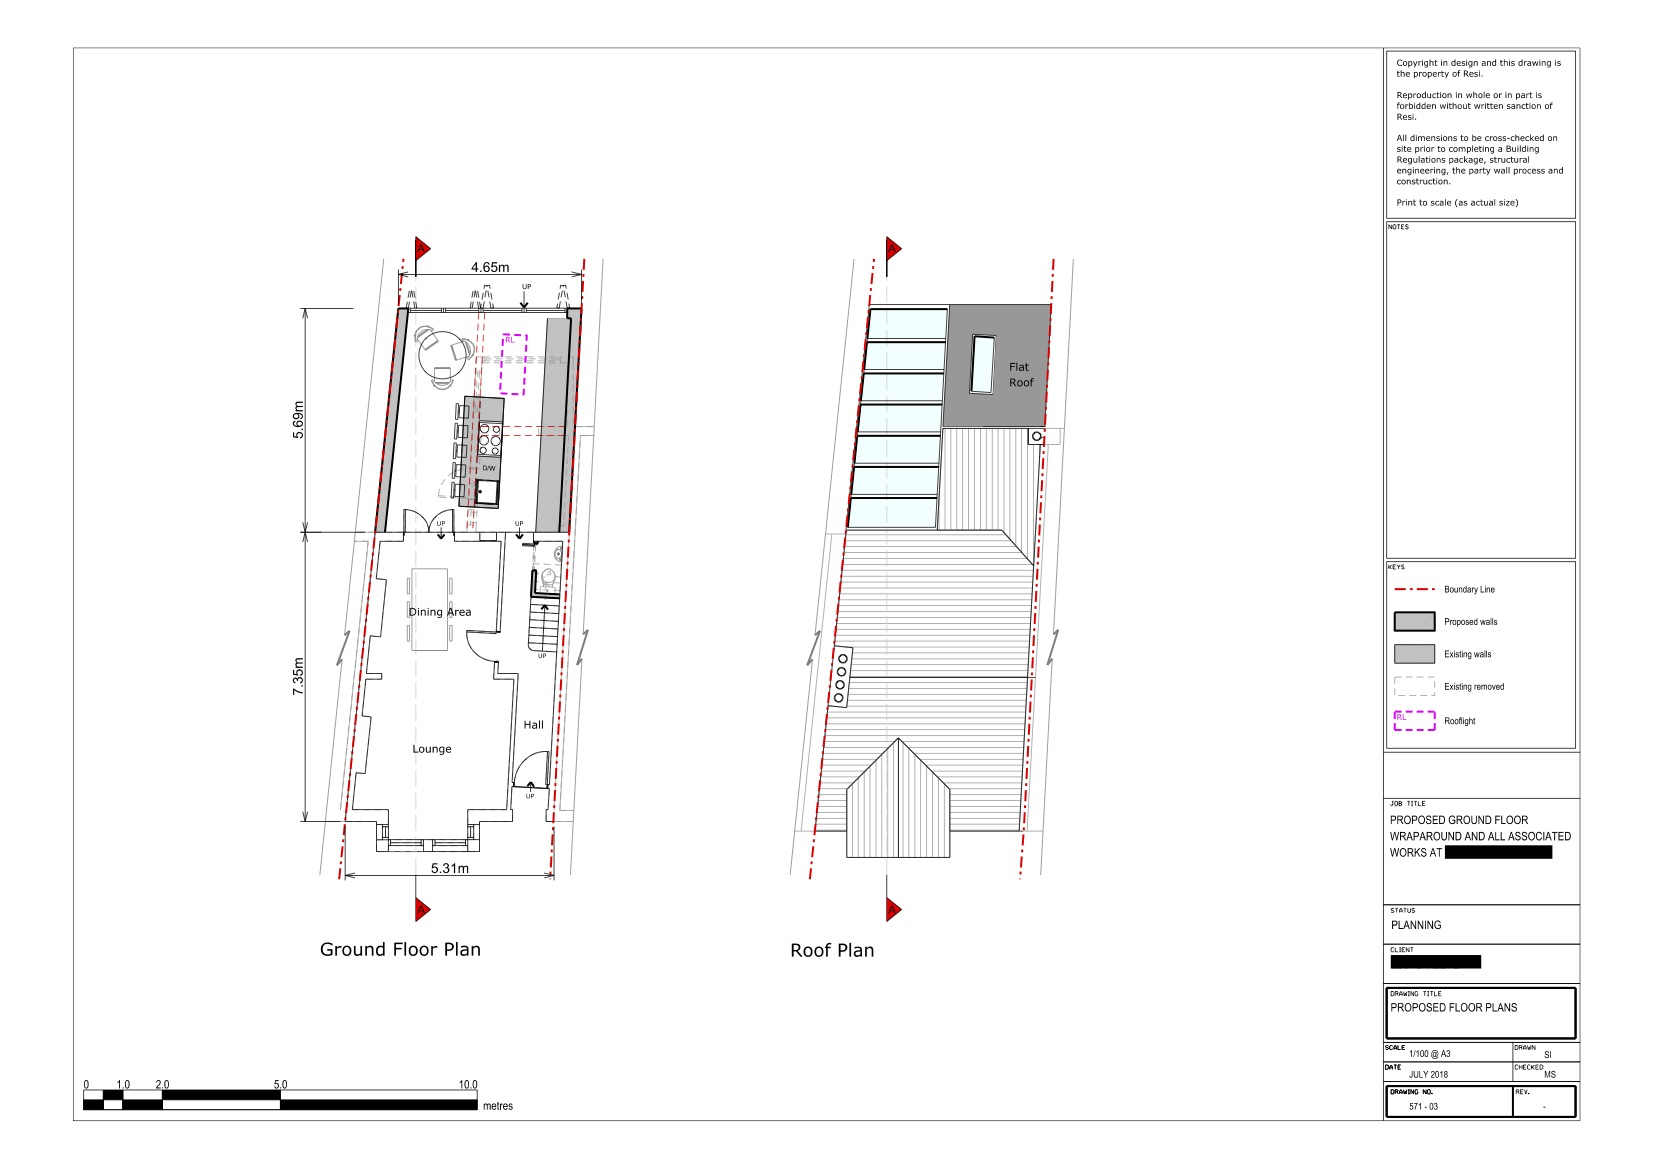 Architectural drawings    ground floor and roof plans